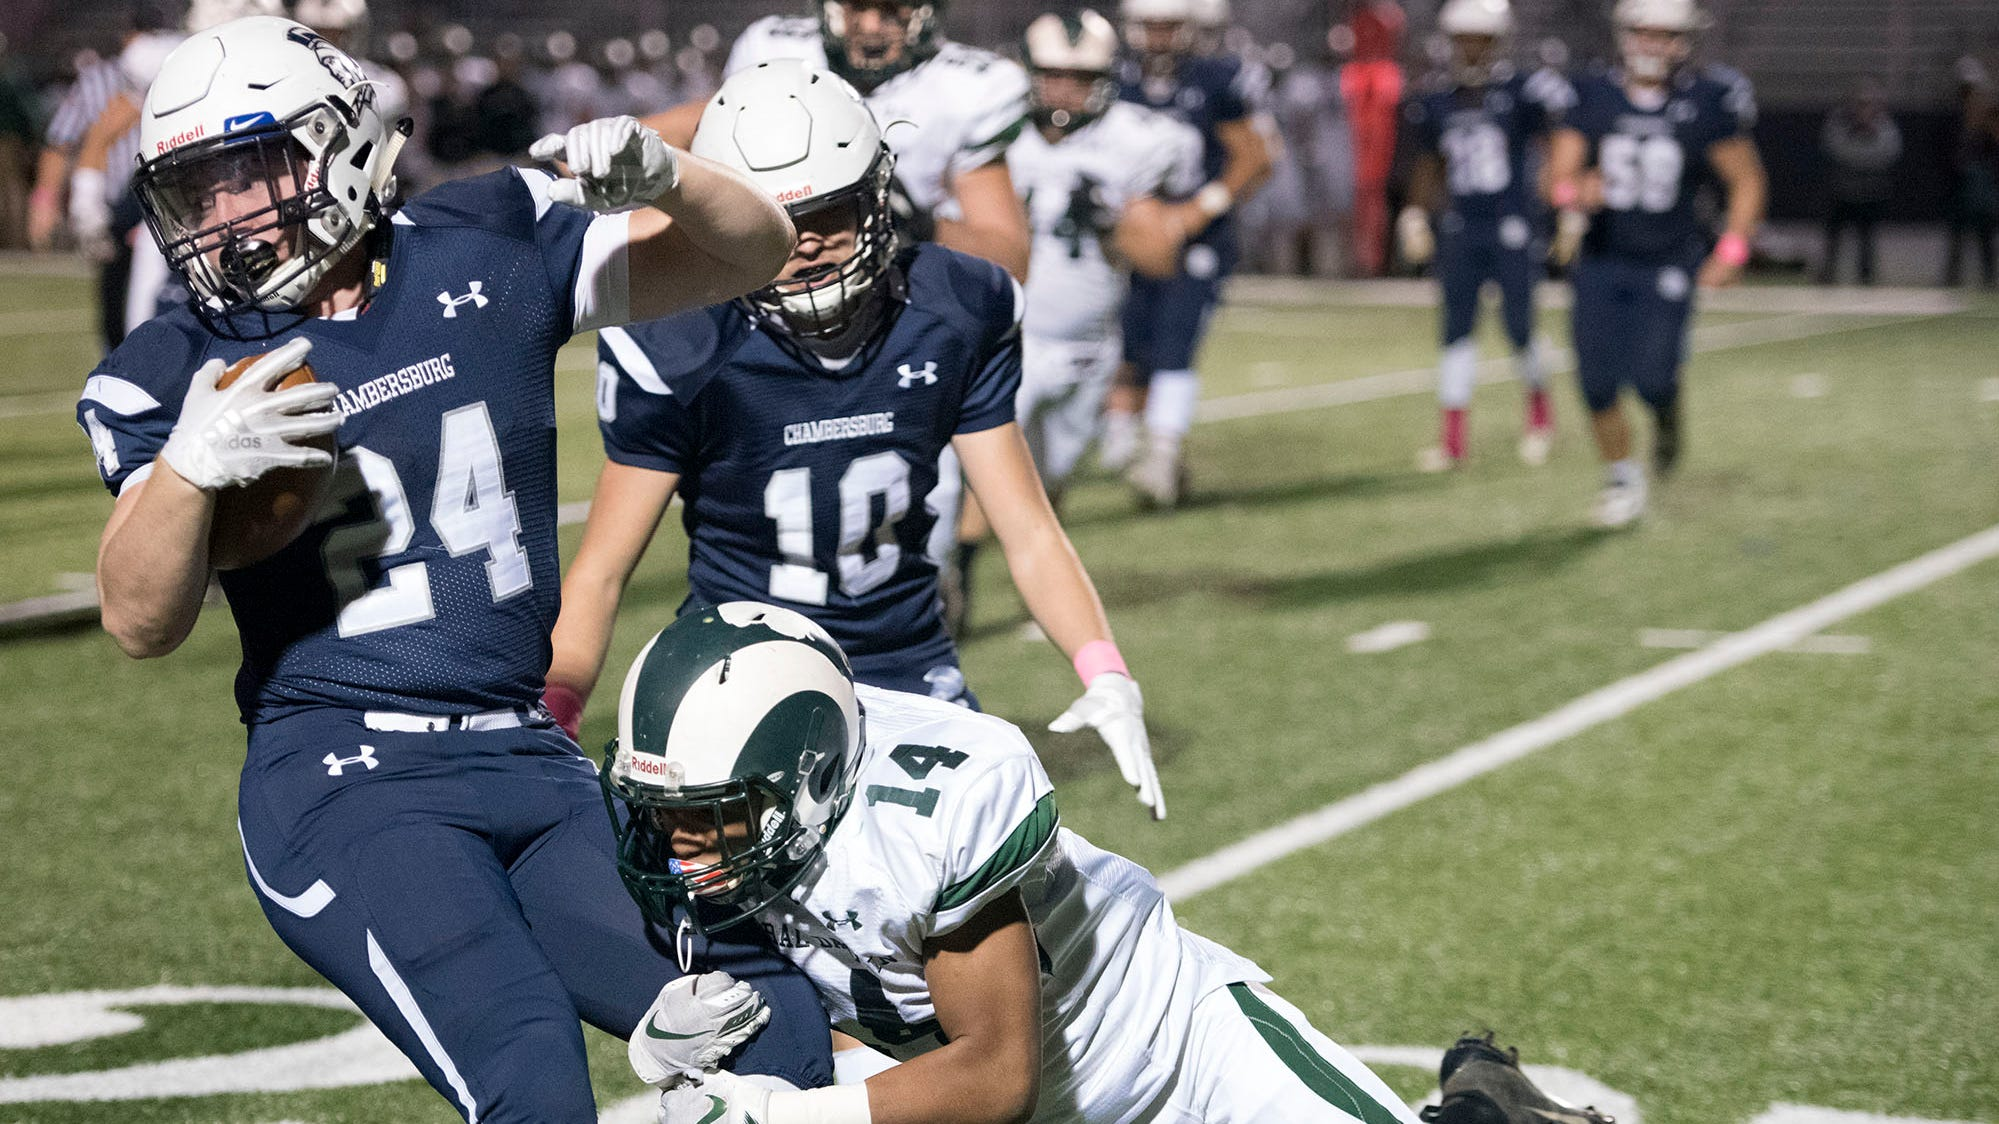 Chambersburg's Andrew Shetter (24) gains yards before being tackled by CD's Malachi Bowman (14). Chambersburg lost to Central Dauphin 35-14 in PIAA football on Friday, Oct. 19, 2018.